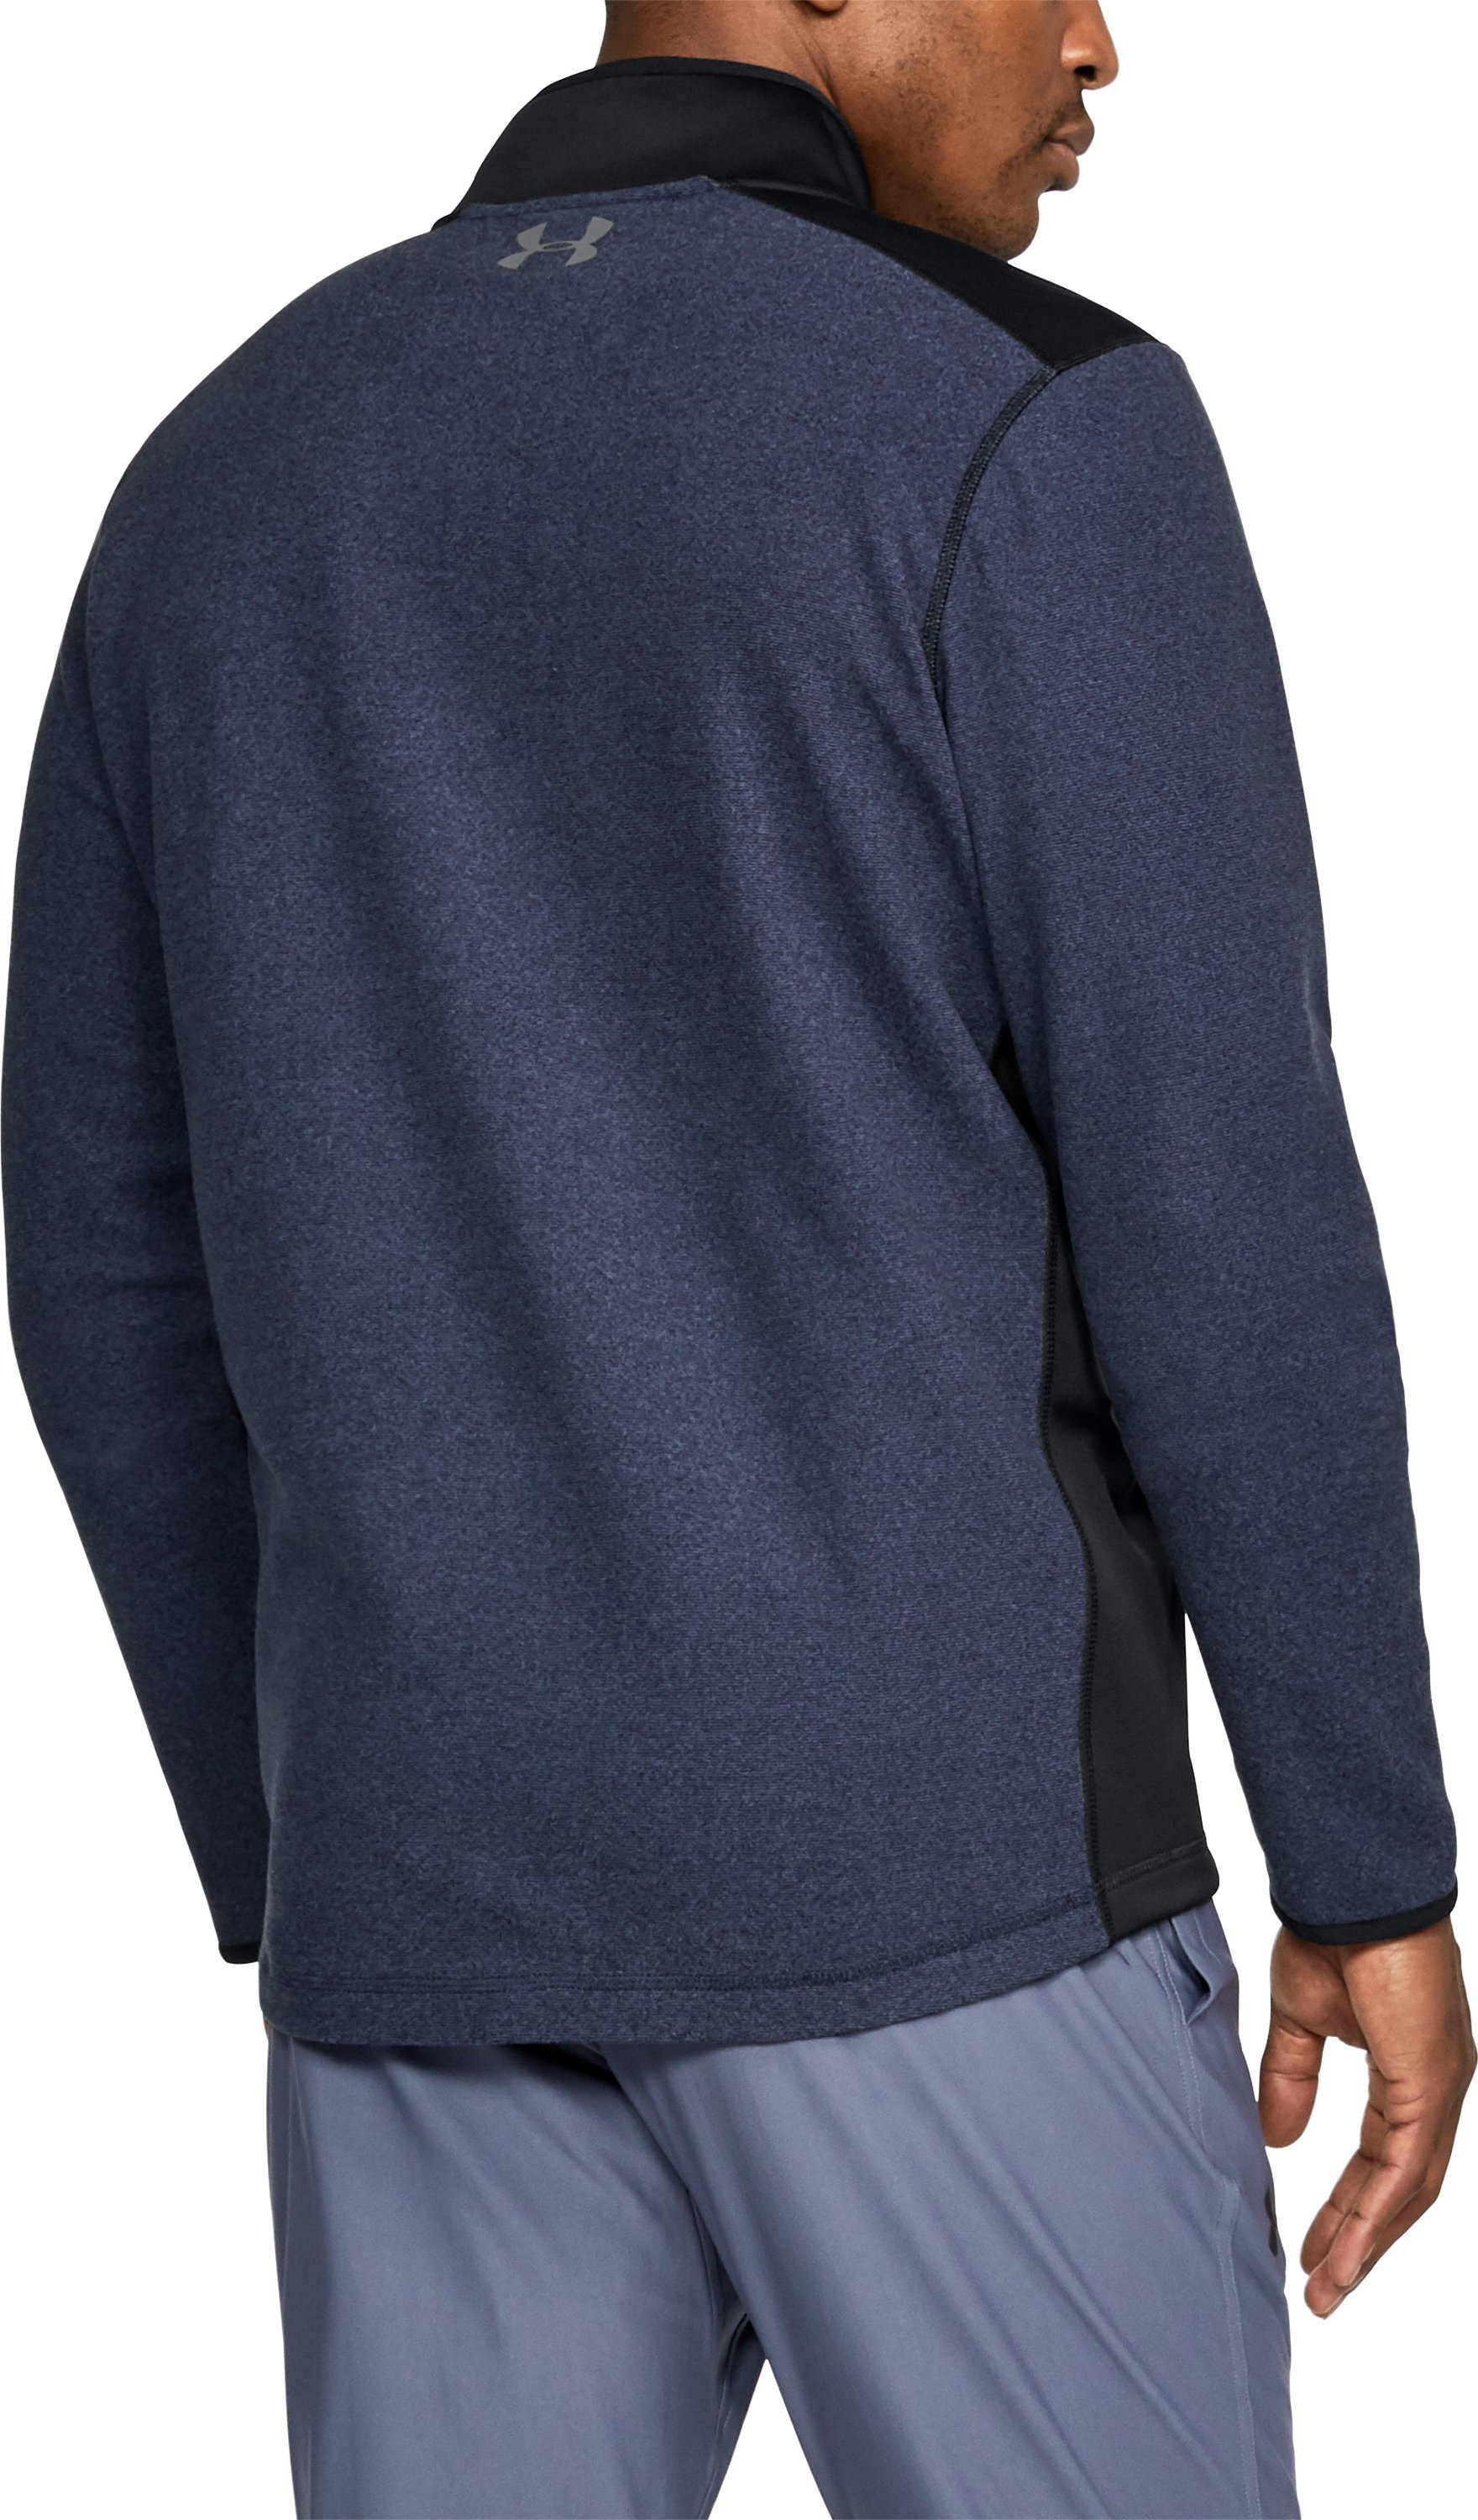 Men's ColdGear® Infrared Fleece ¼ Zip, Midnight Navy, undefined